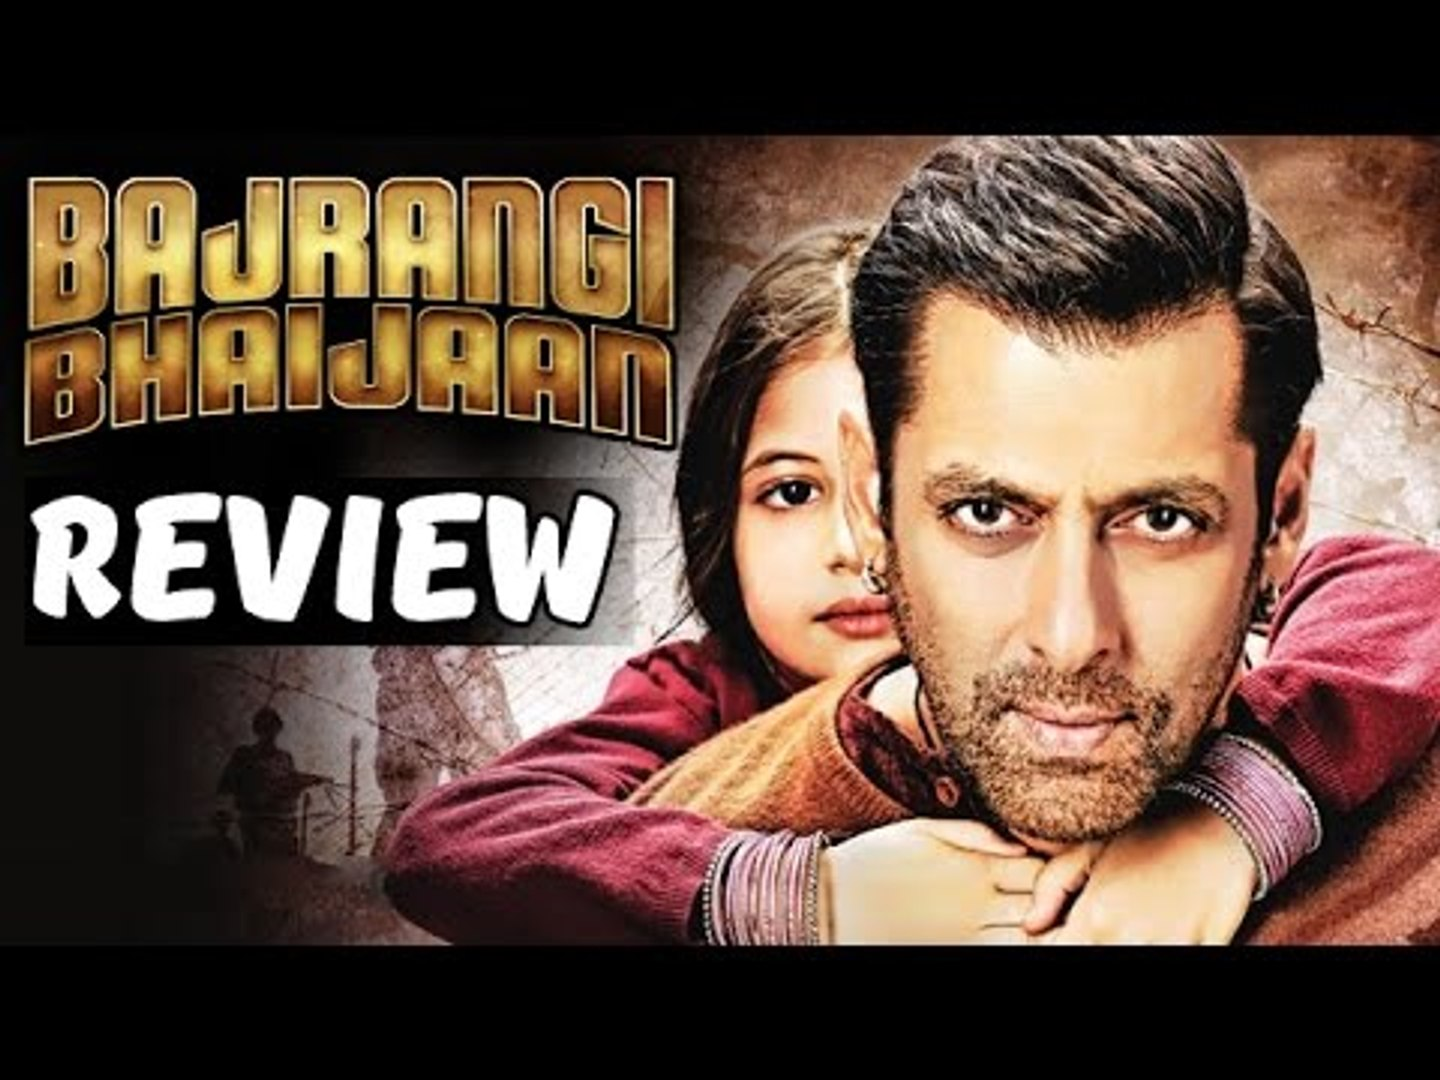 Bajrangi Bhaijaan Movie Review Salman Khan Harshali Kareena Kapoor Nawazuddin Video Dailymotion